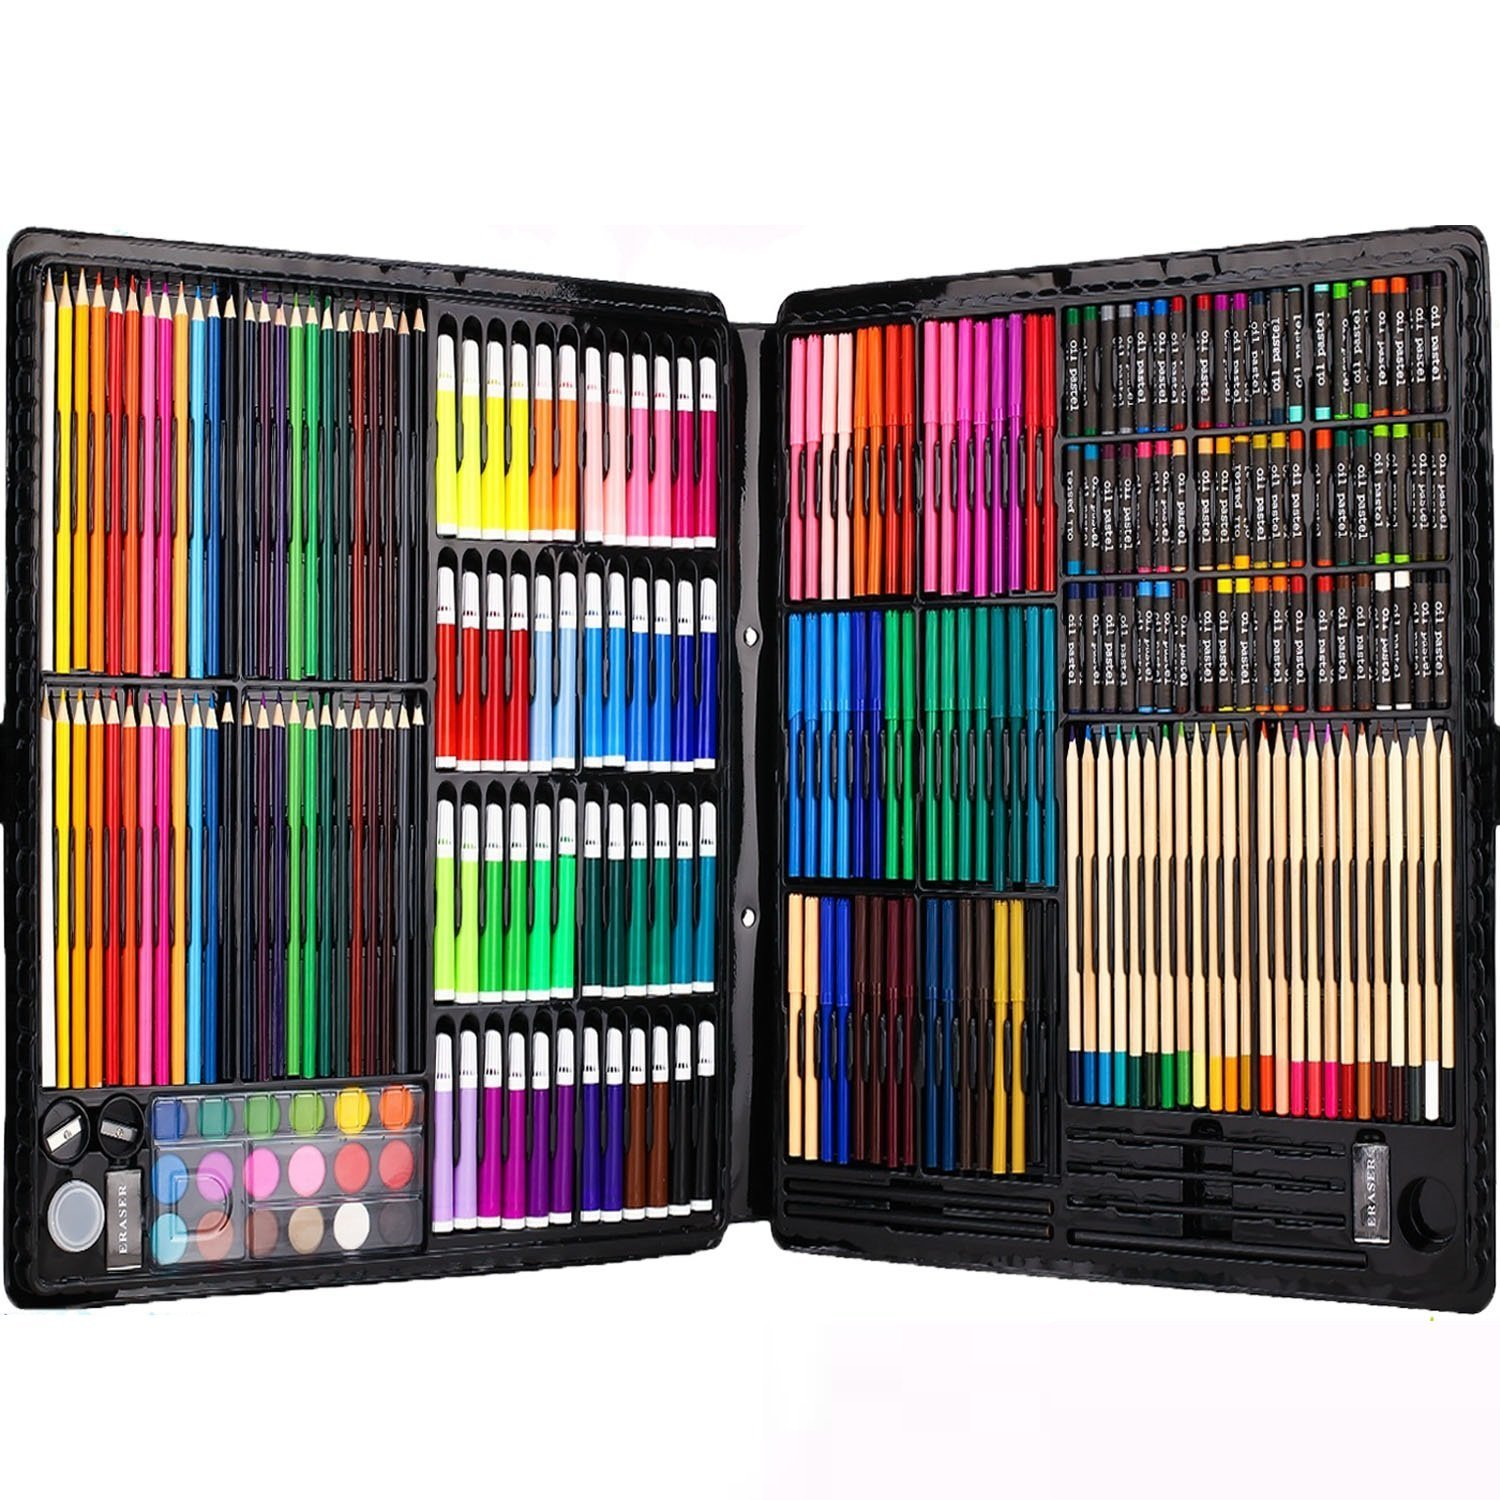 258 Piecs Inspiration Art Set for Drawing and Sketching Colored Pencils Crayons Case Painting Set Ccfoud 4336945915